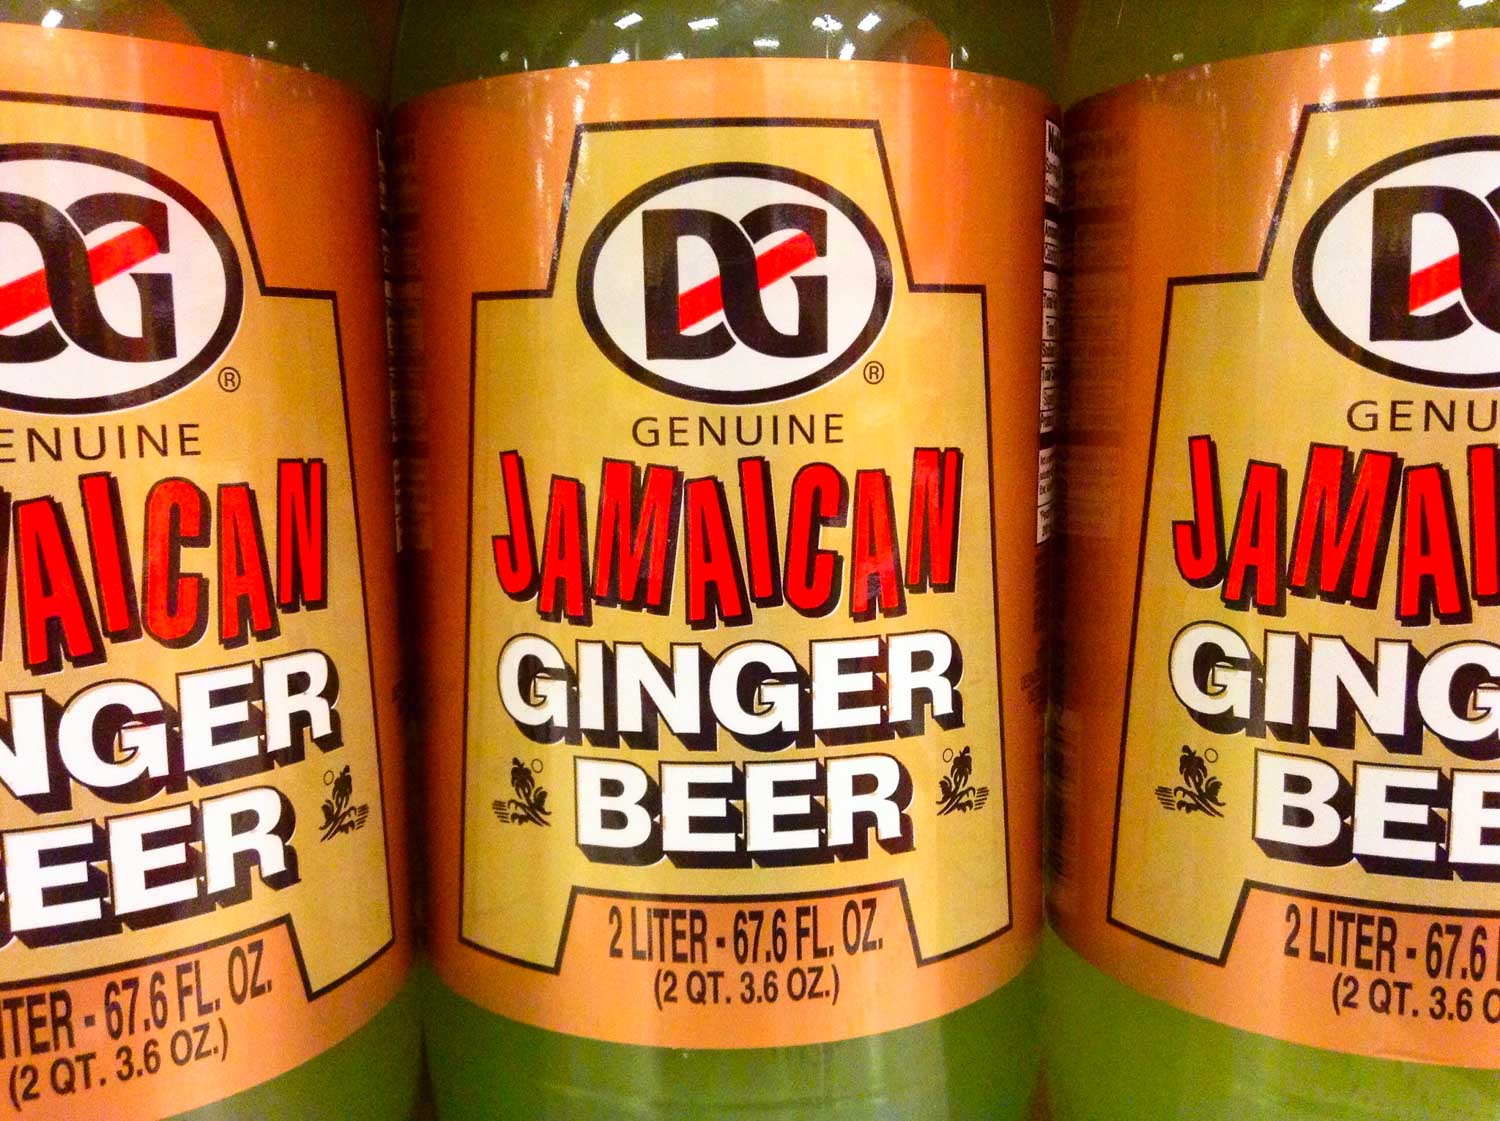 Three bottles of genuine Jamaican ginger beer.